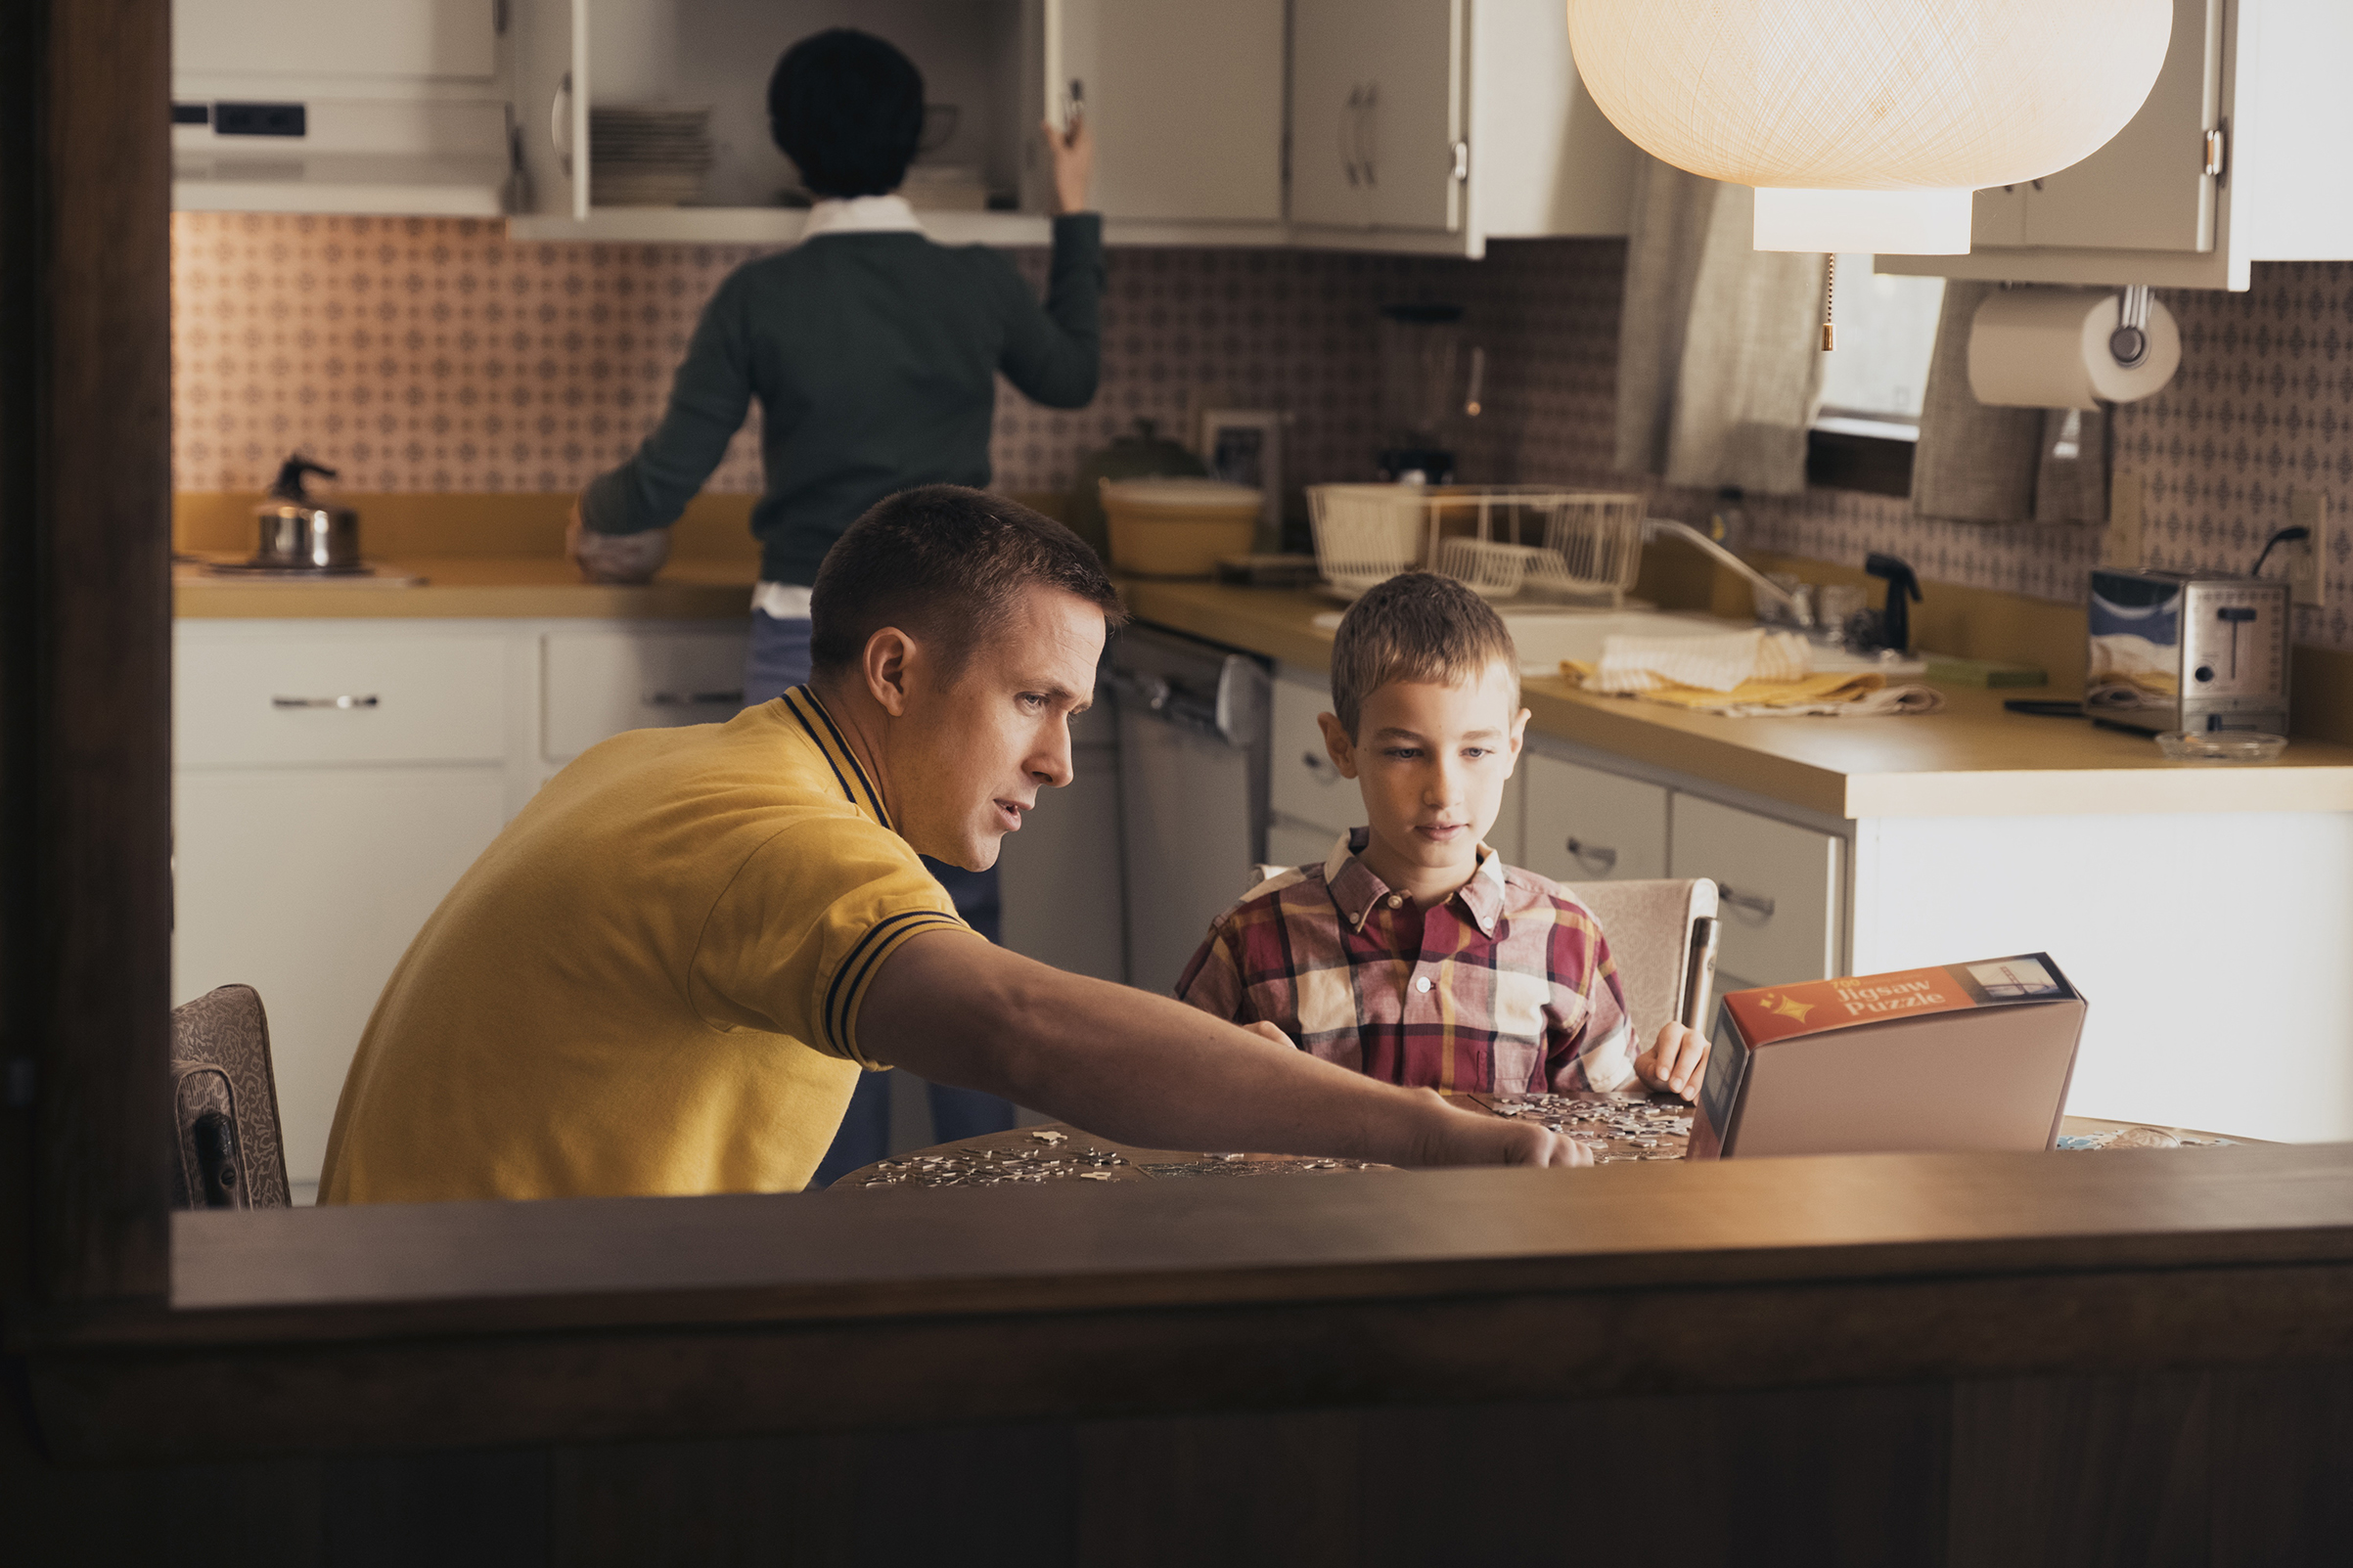 The moon and the home pulled Apollo astronauts in opposite directions. Armstrong (Gosling), with his wife and son in their Houston kitchen, suffered that more than most.